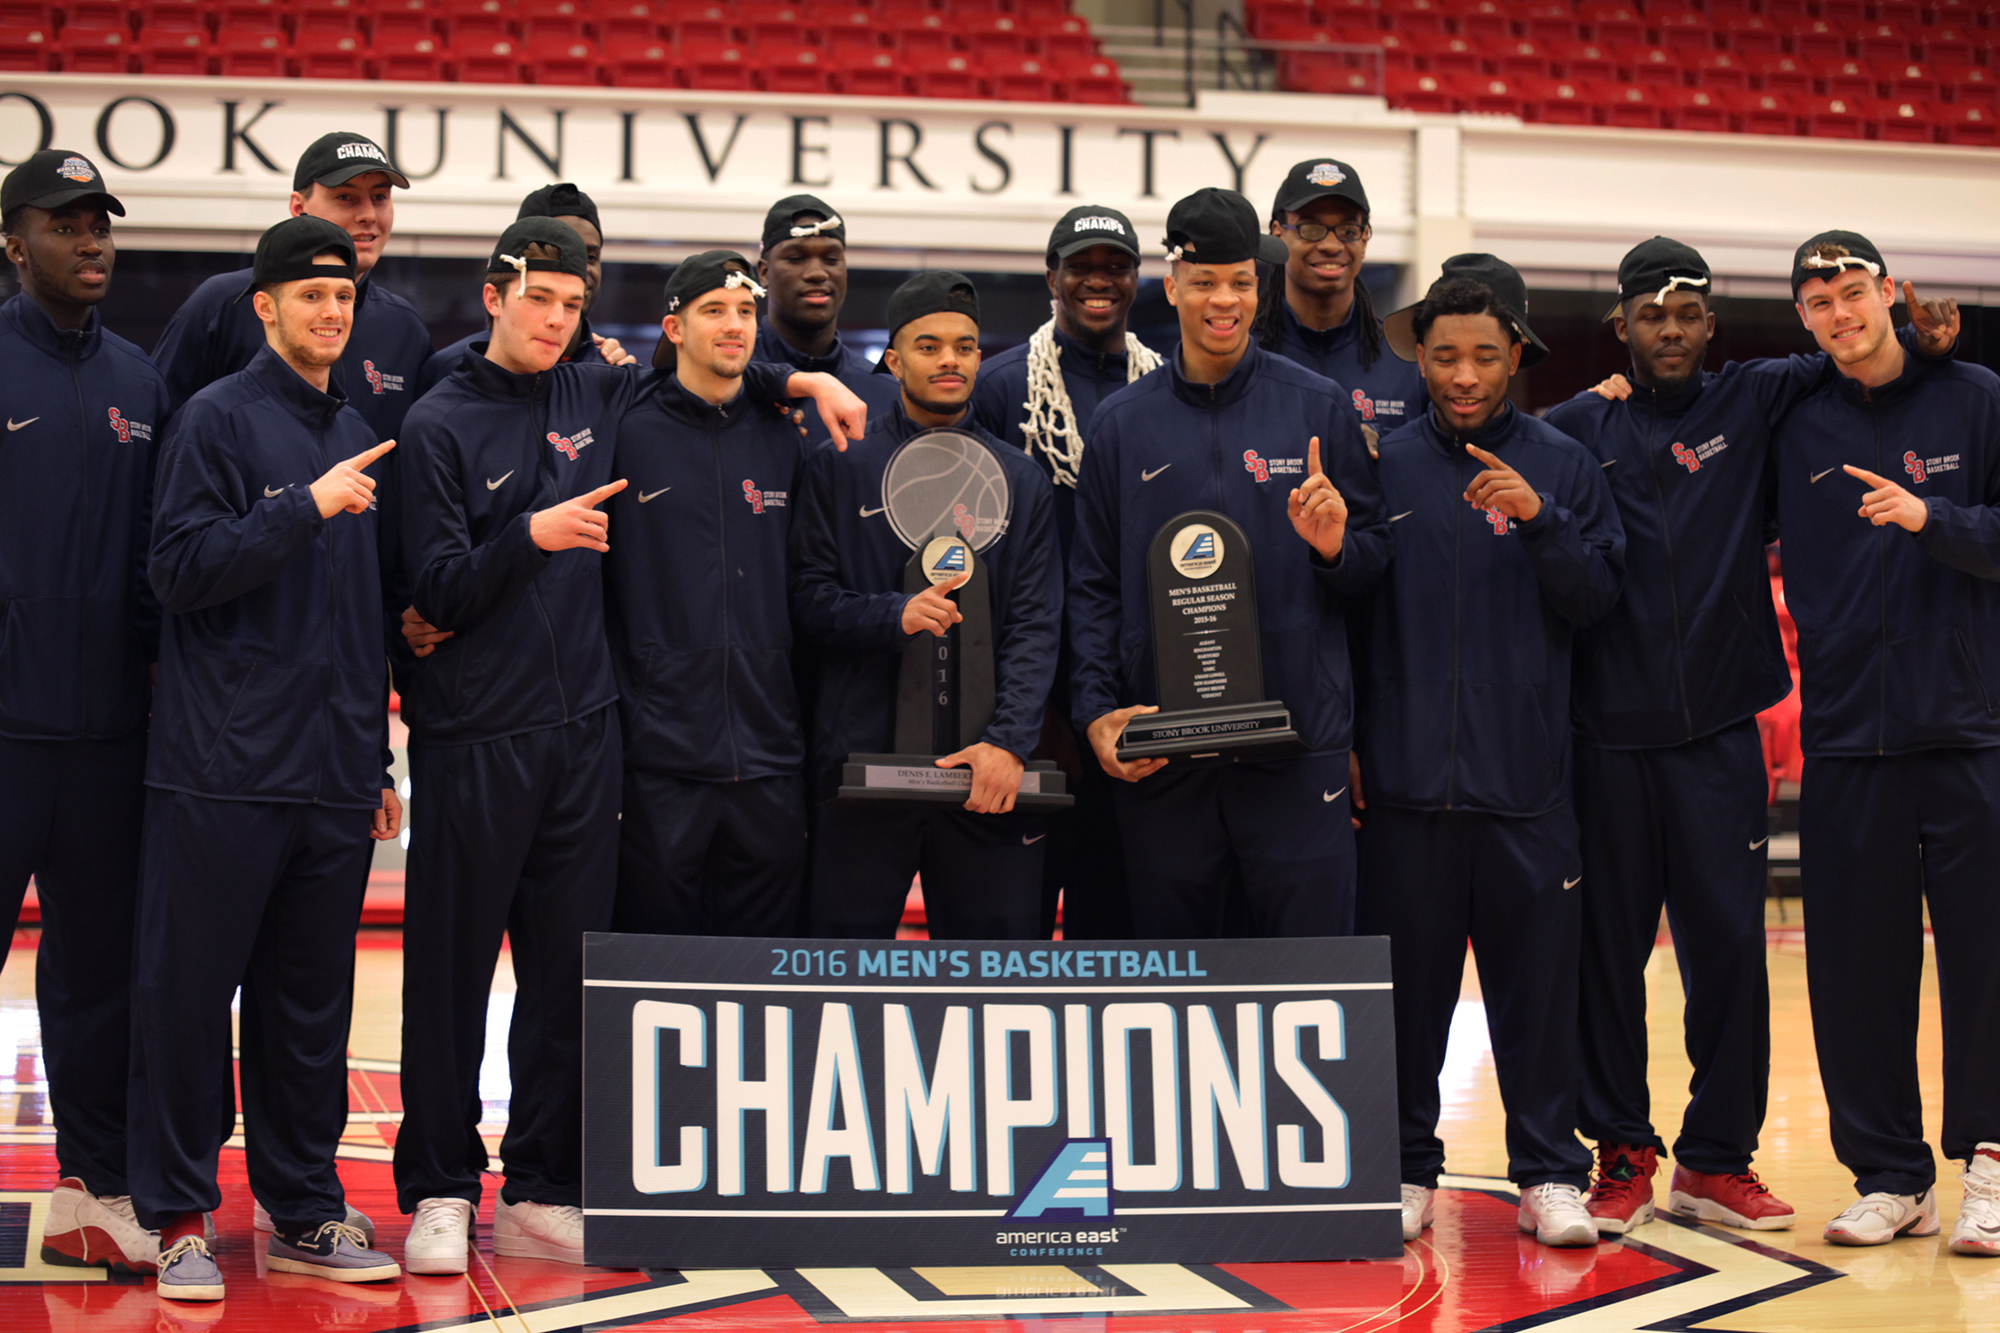 The Stony Brook Men's Basketball team poses with the team's championship trophy and banner at Sunday Selection for the NCAA tournament. ANDREW EICHENHOLZ/THE STATESMAN